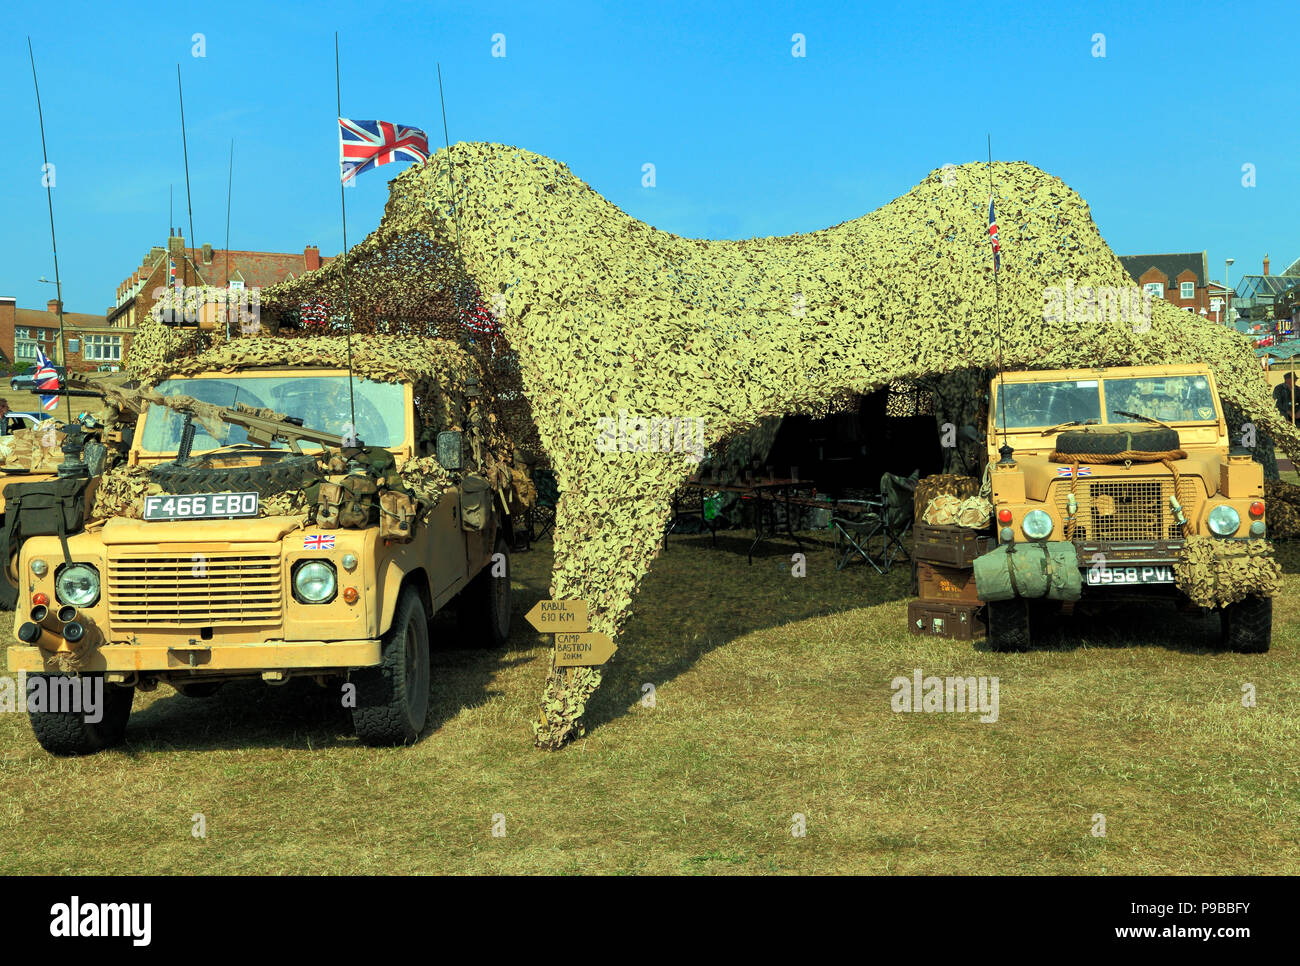 British Military Vehicles, jeep,armoured car, camouflage tent, 1980's vinatage, as used in Afghanistan War - Stock Image